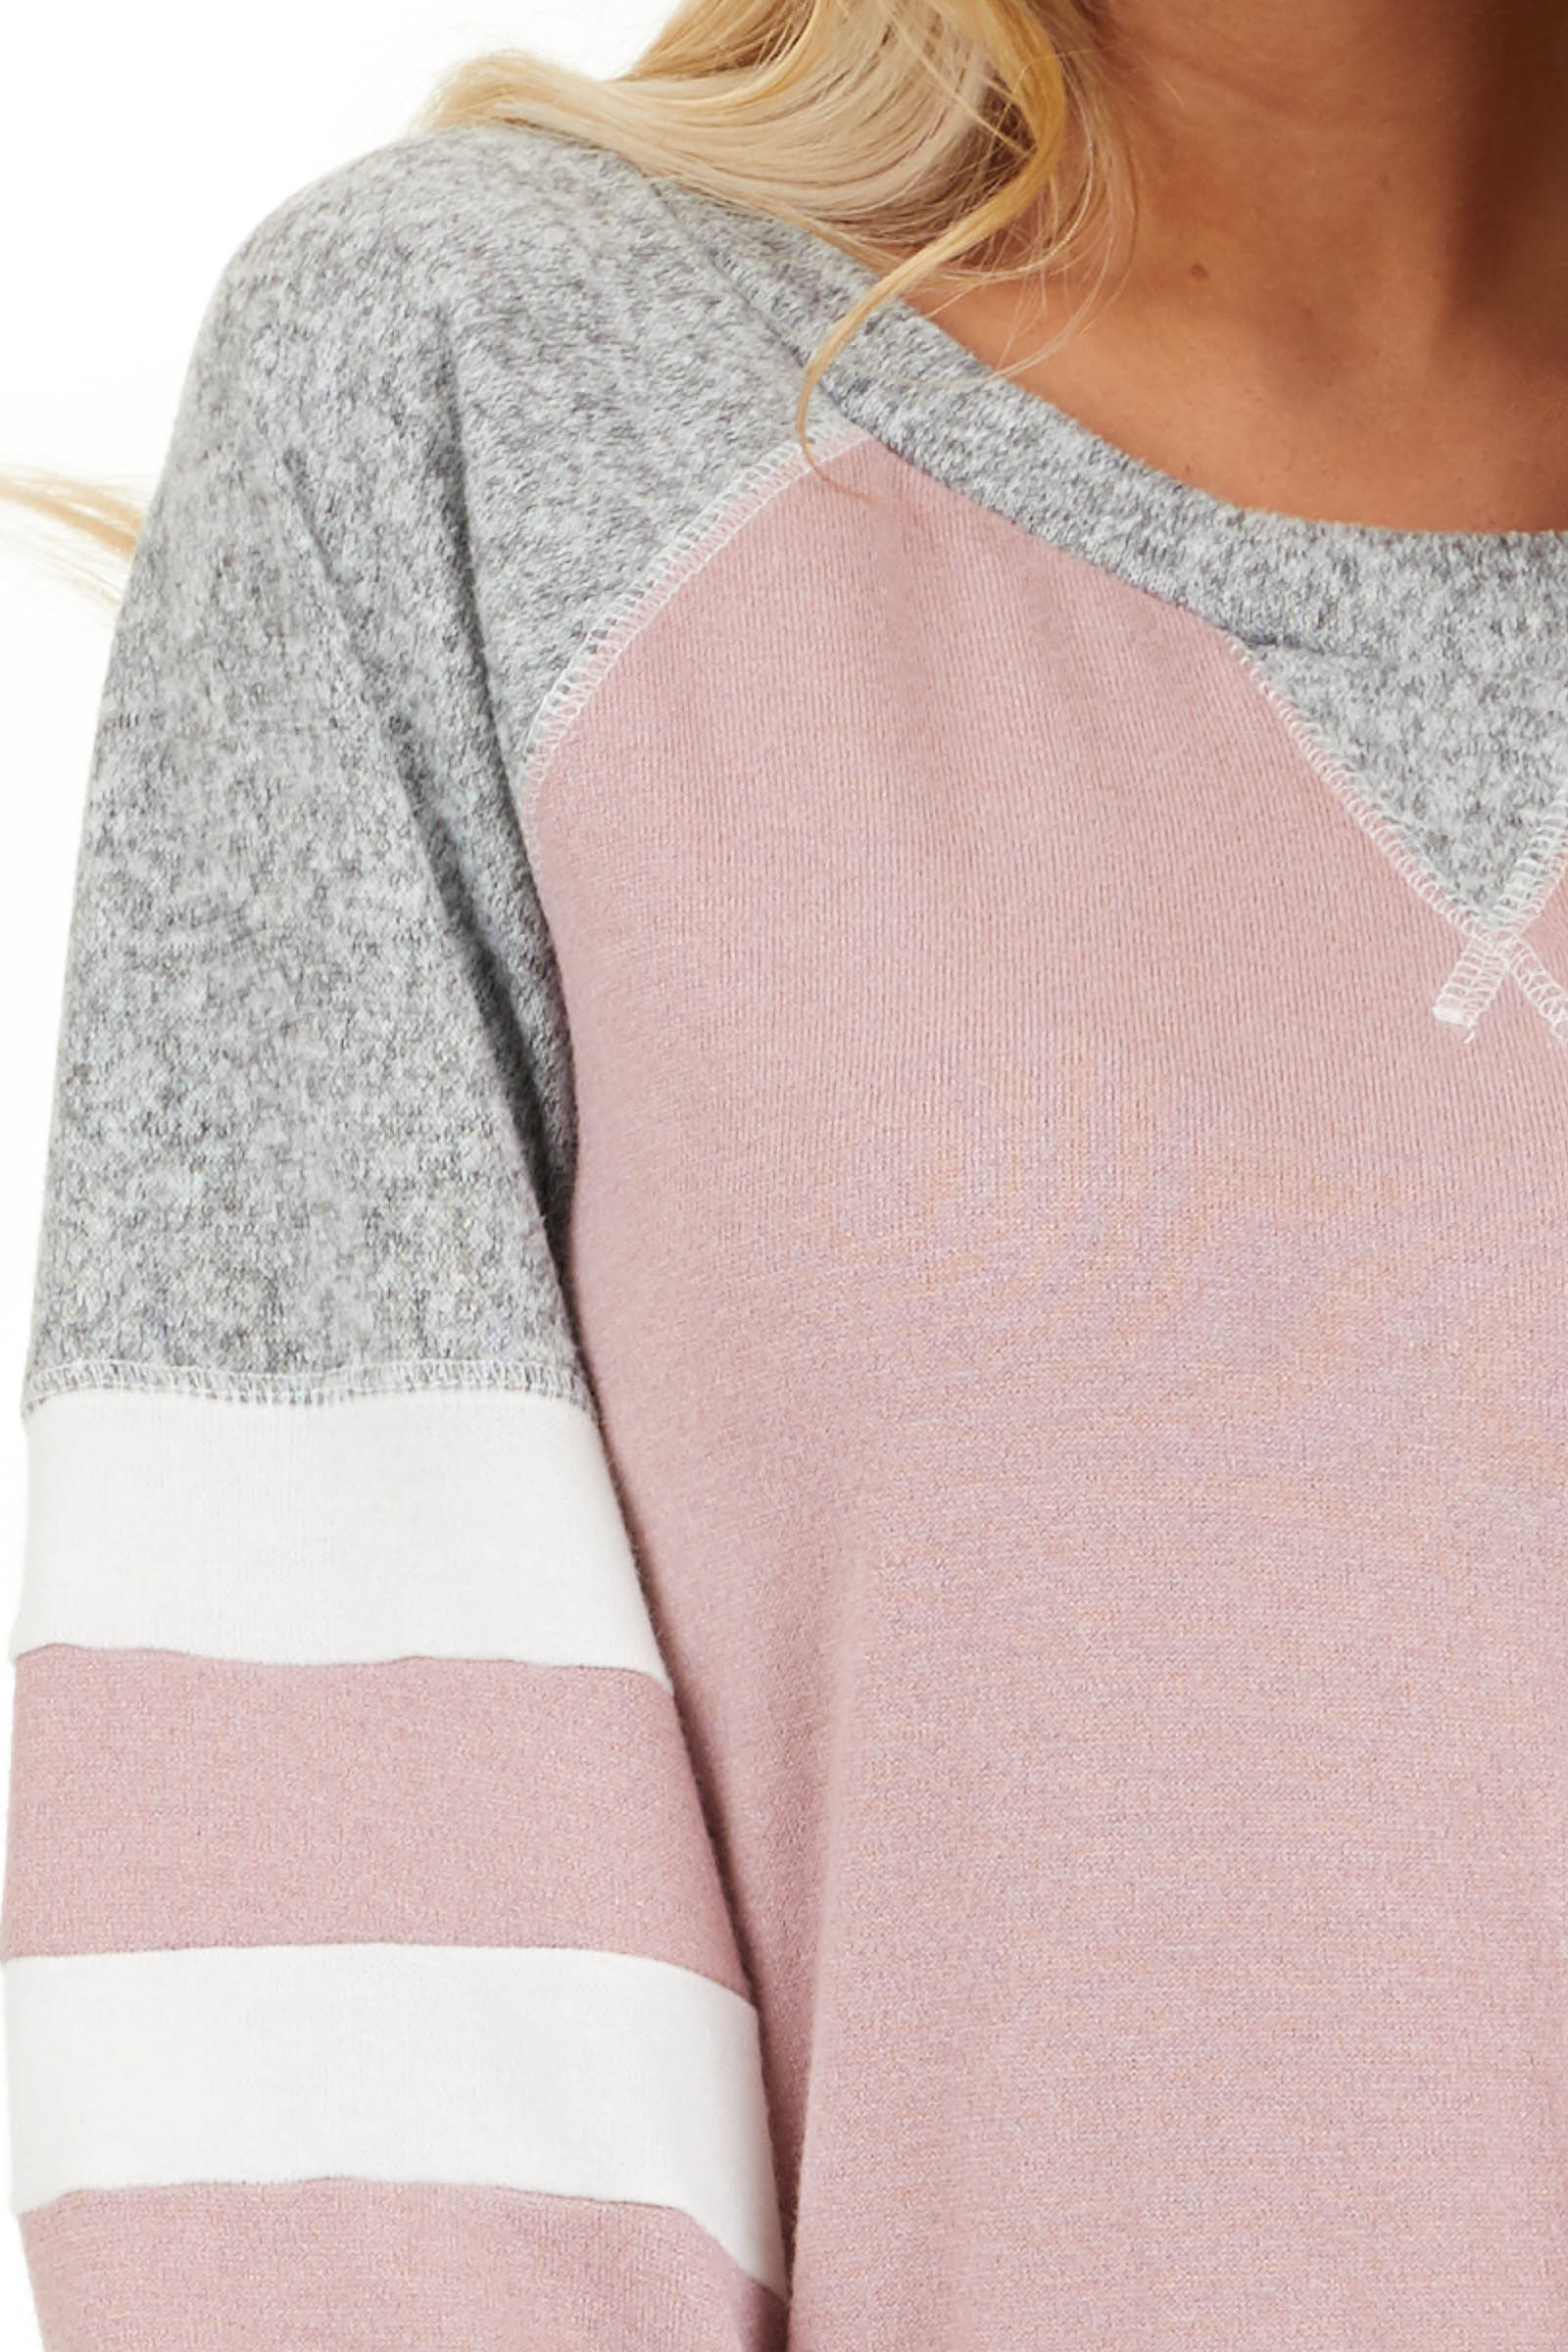 Dusty Blush and Heathered Grey Long Sleeve Knit Top detail